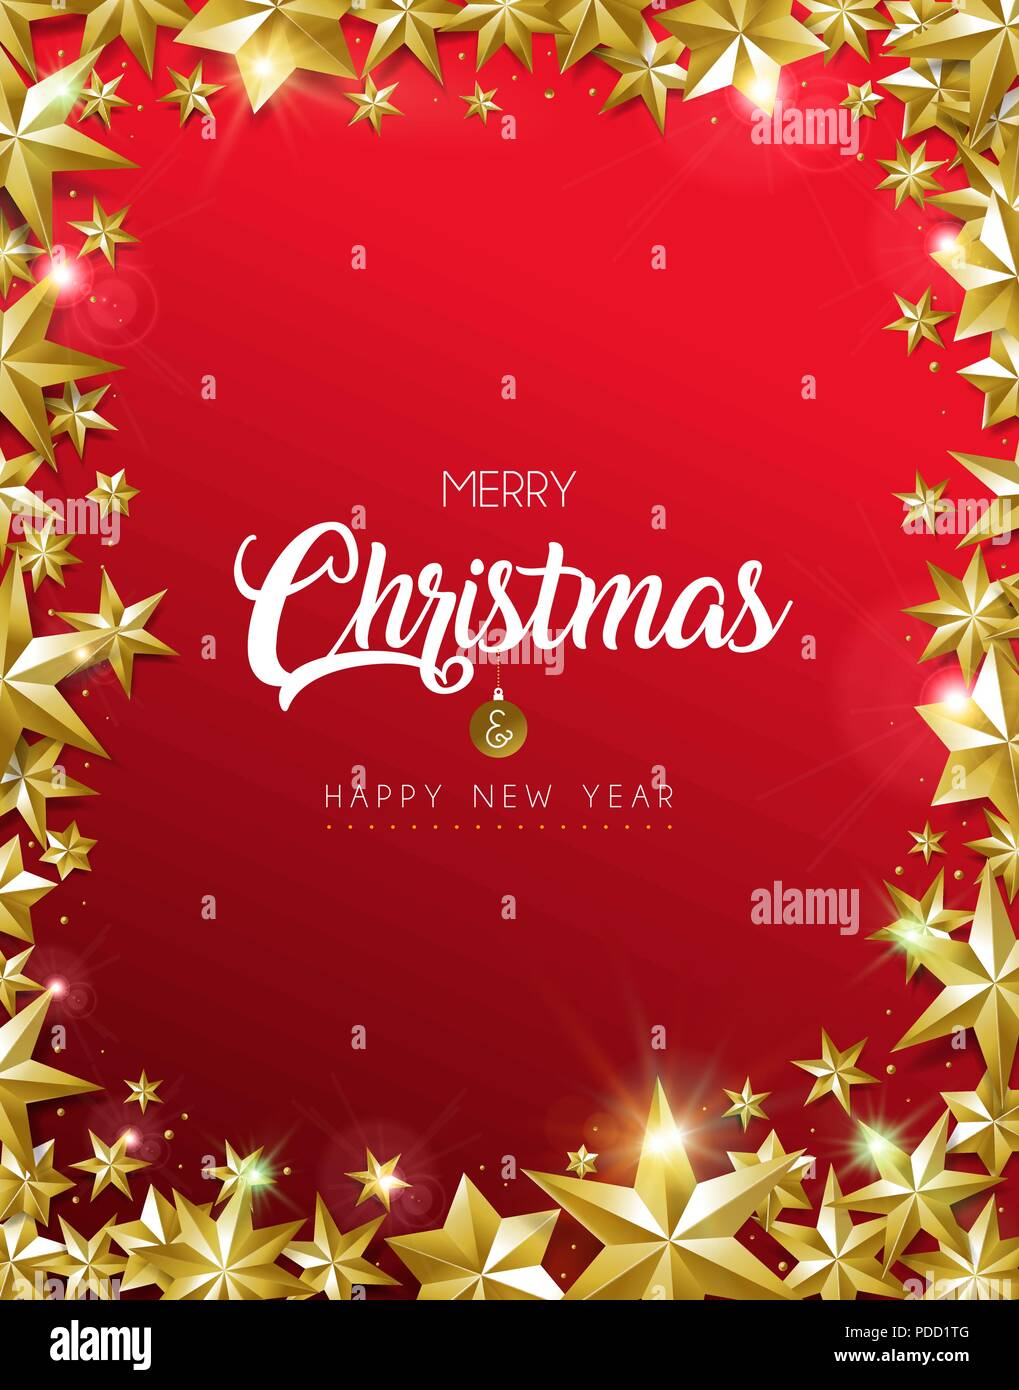 merry christmas new year greeting card with realistic gold stars and glitter making elegant frame shape luxury red background for holiday celebratio